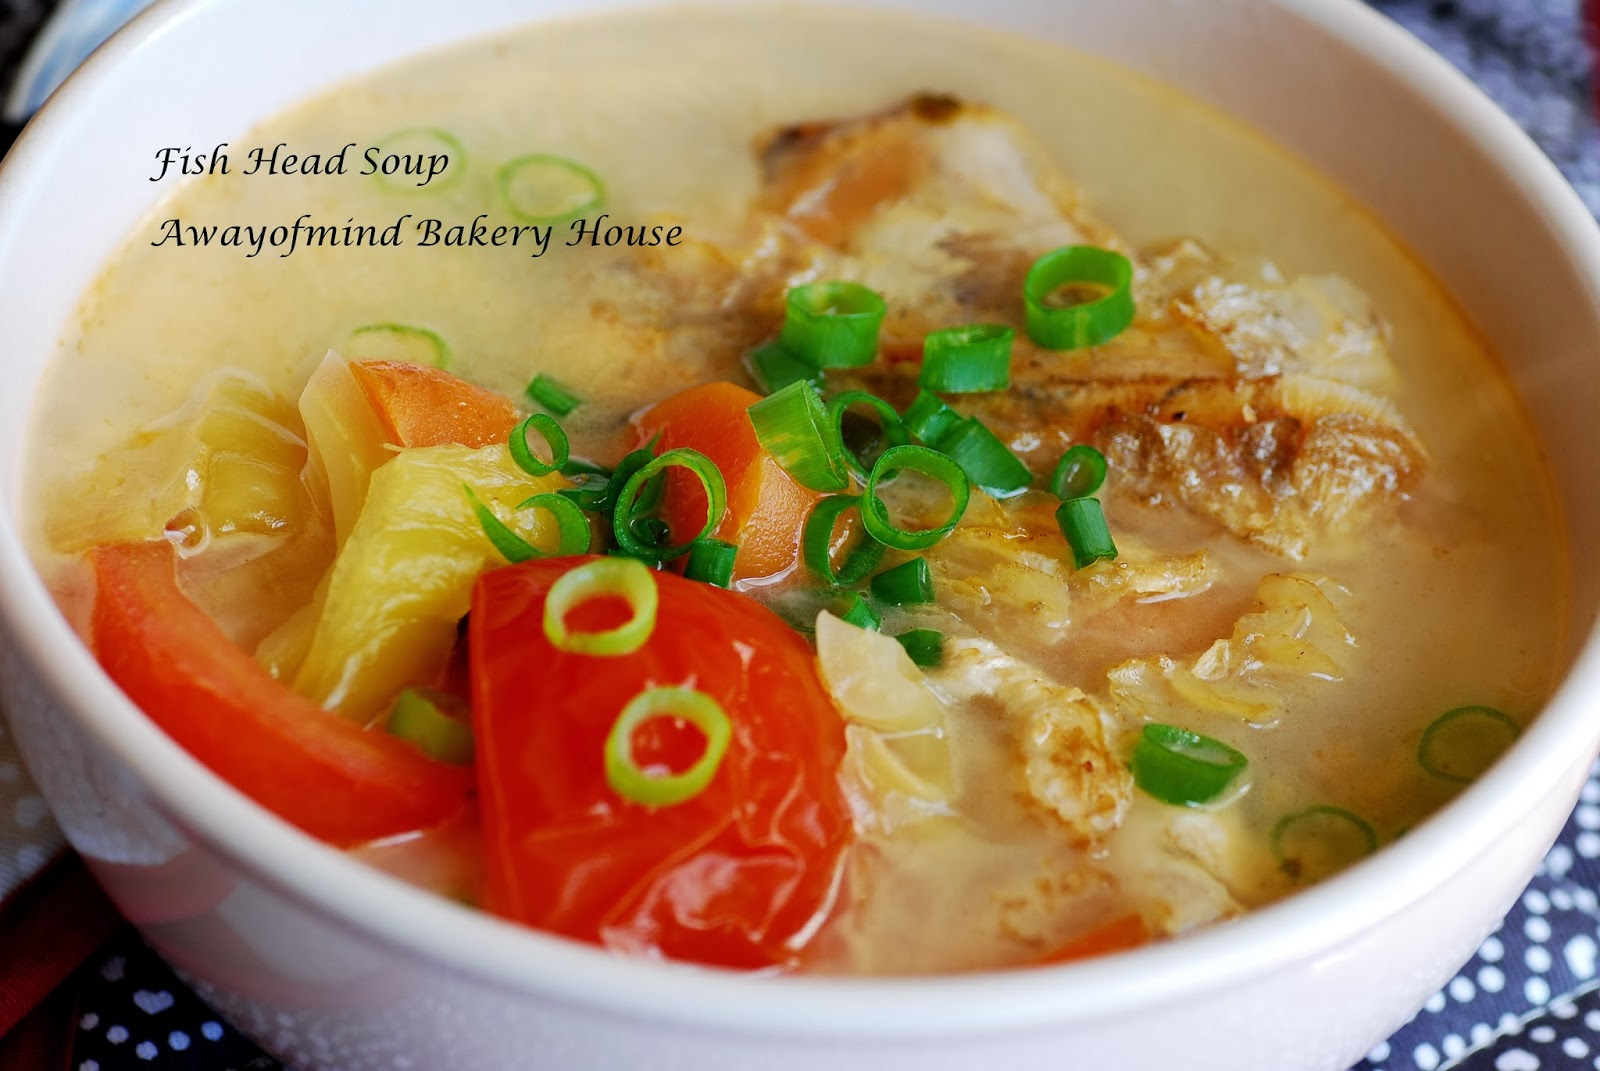 Awayofmind bakery house fish head soup 0 for Fish head soup